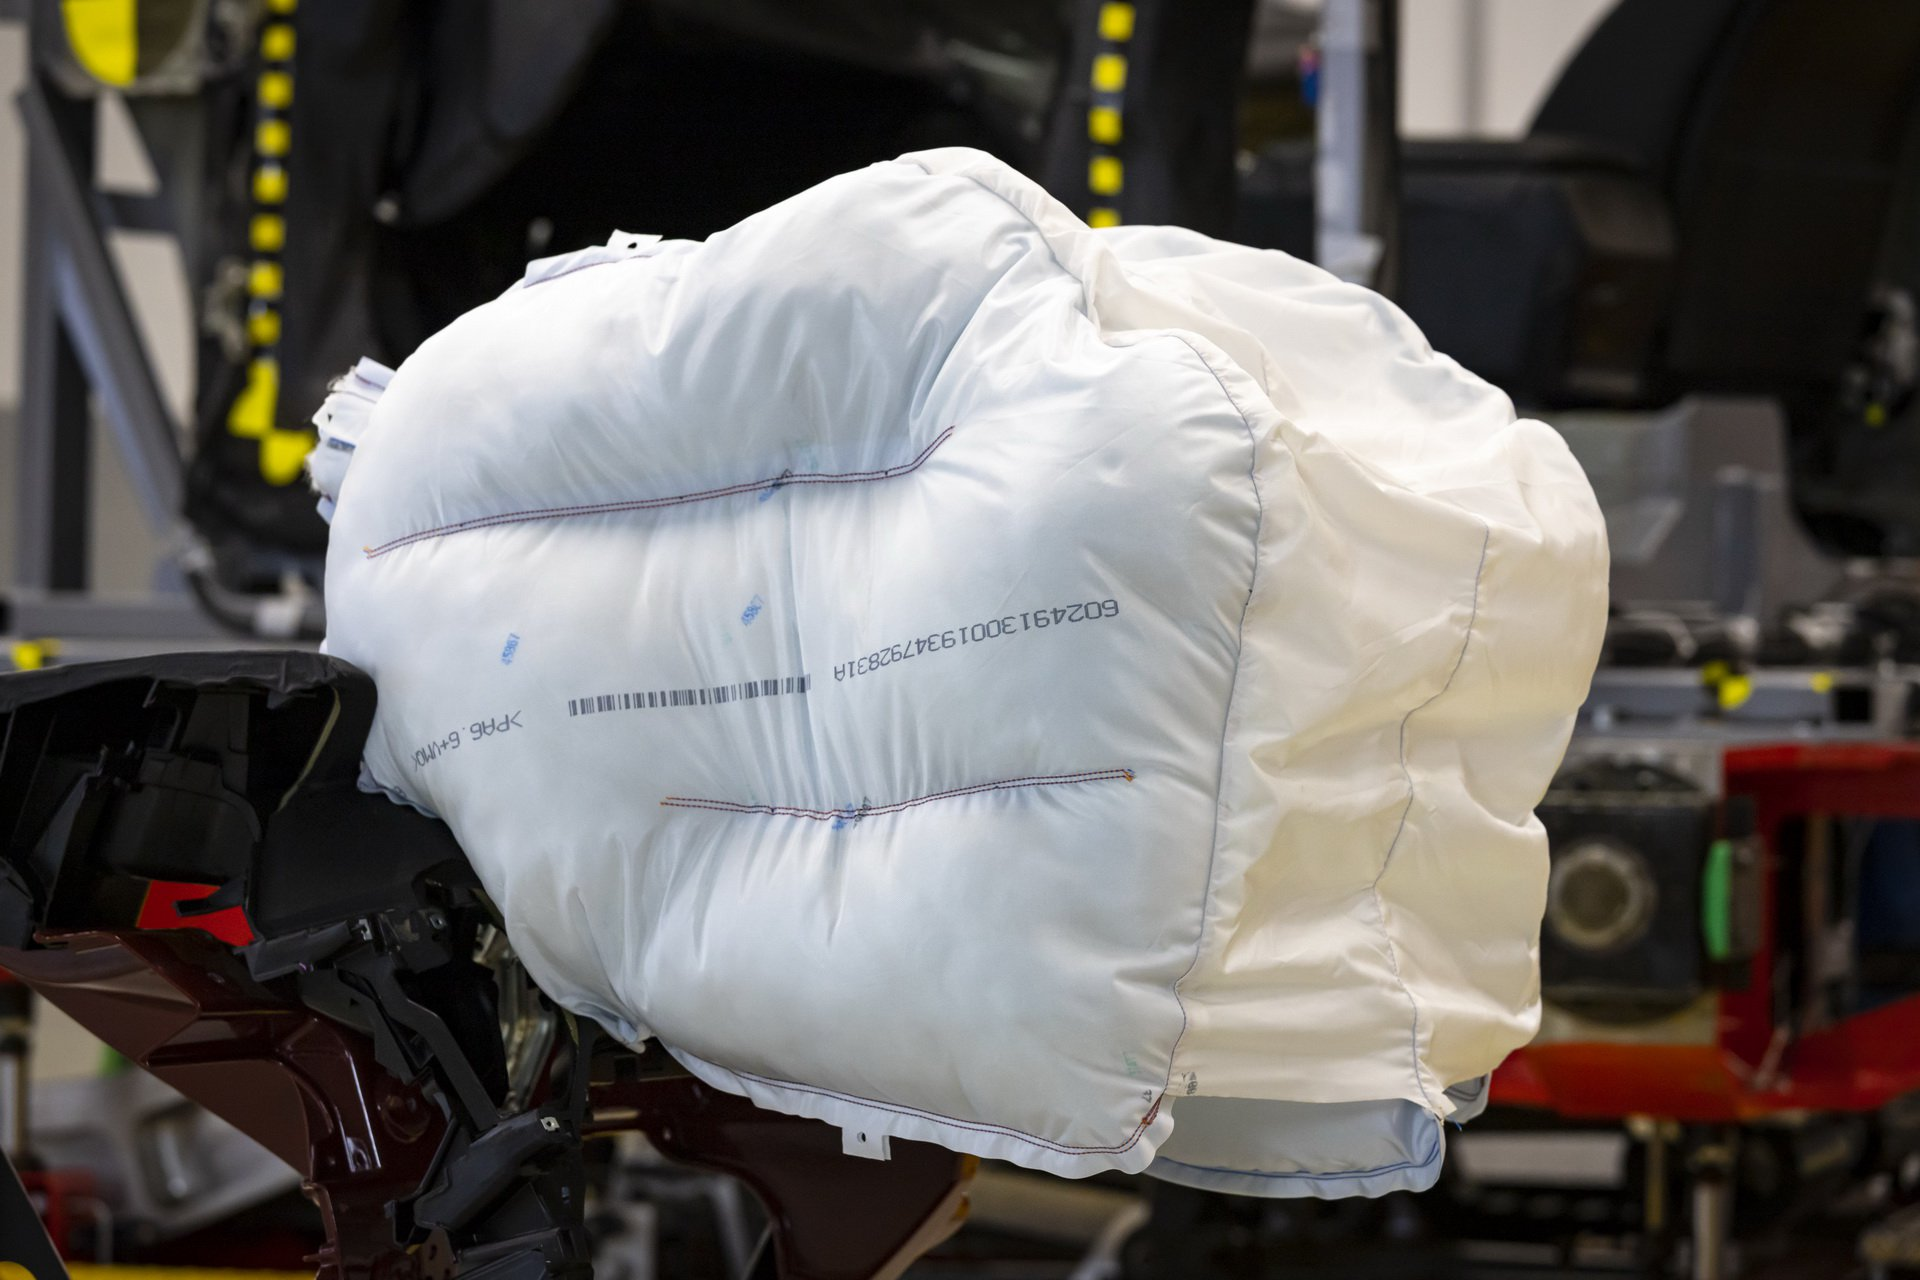 Honda_Innovative_Airbag_0003